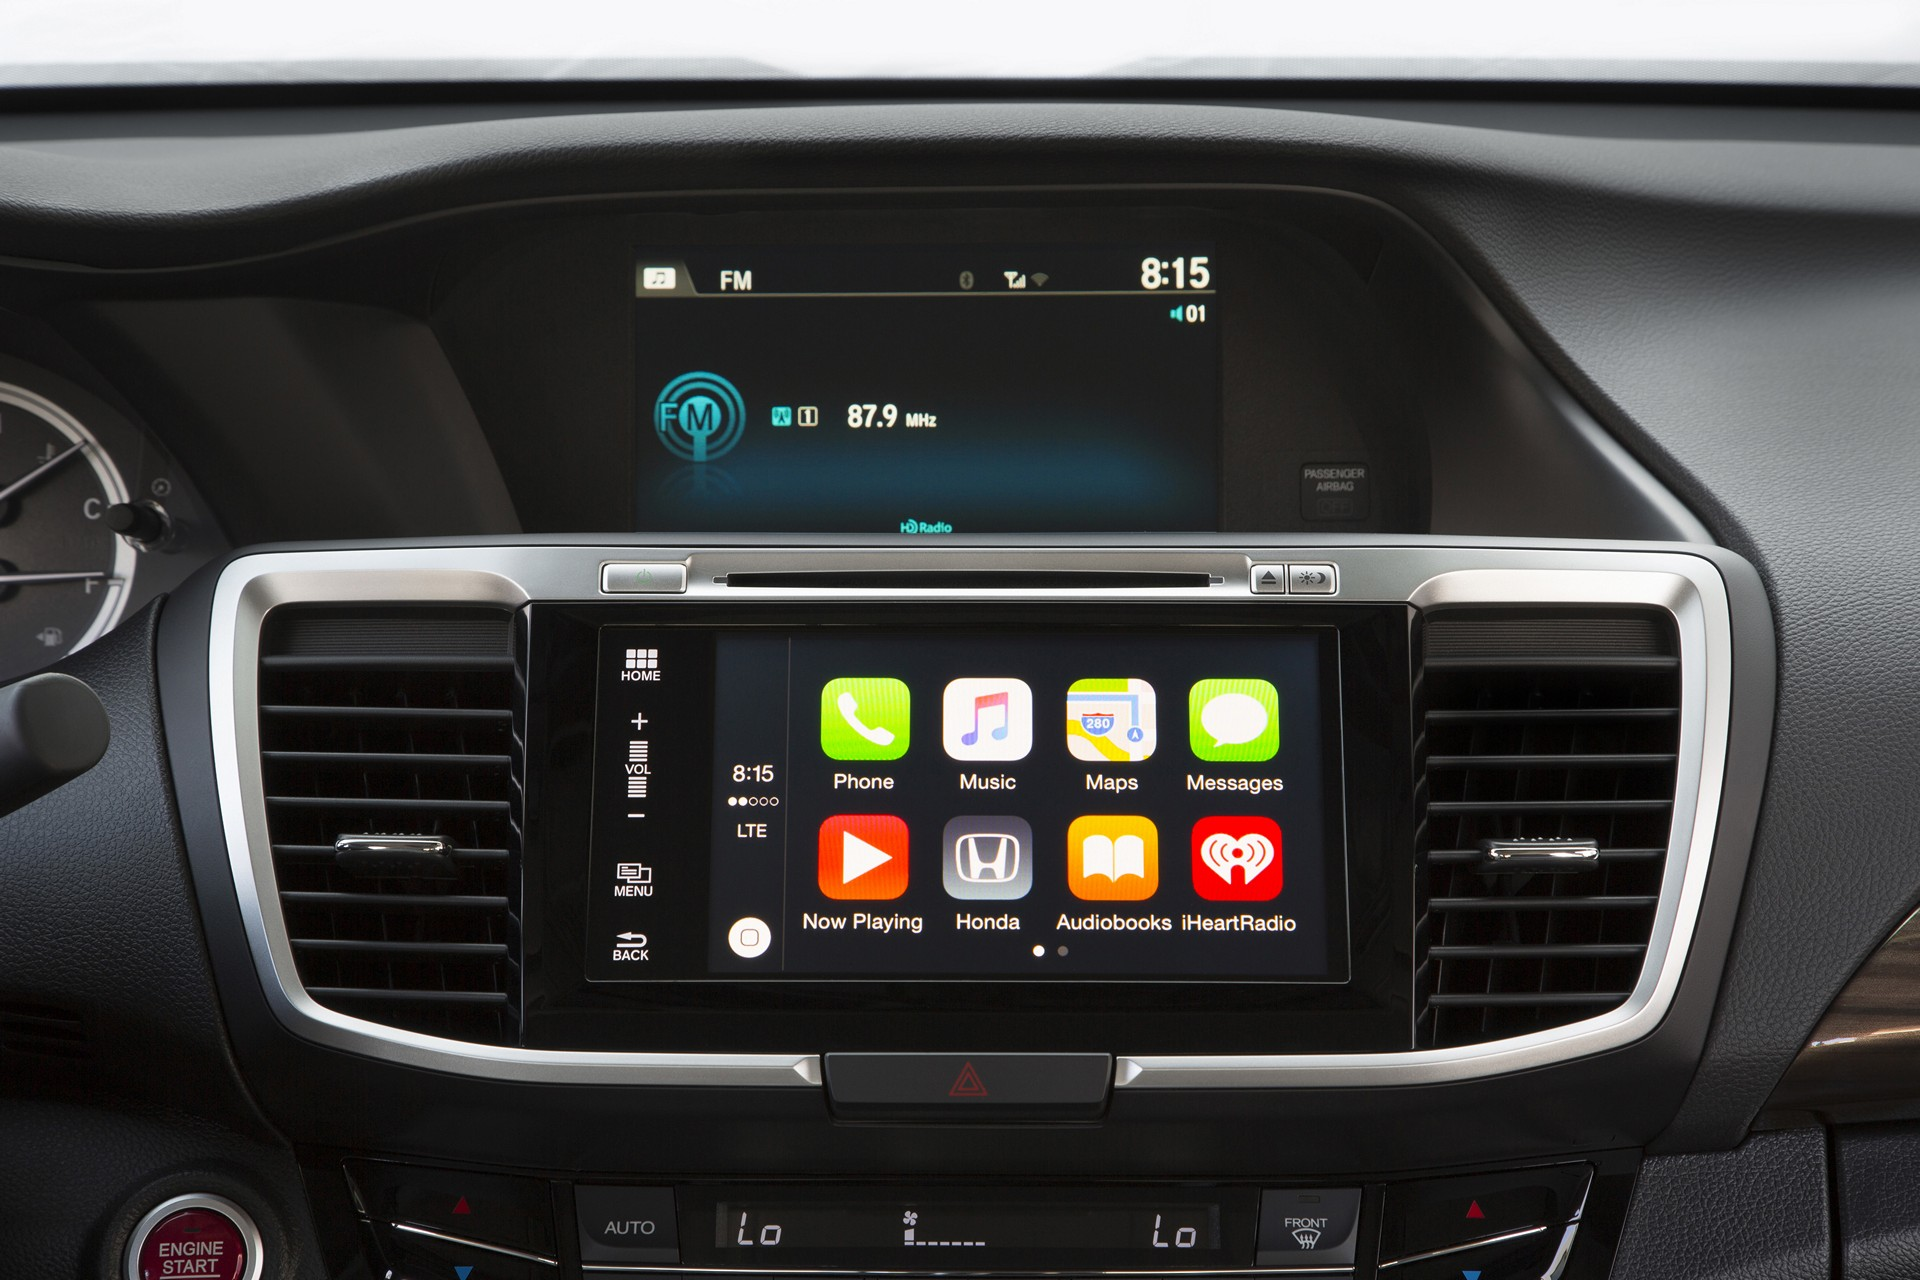 2016 Honda Accord with Apple CarPlay © Honda Motor Co., Ltd.